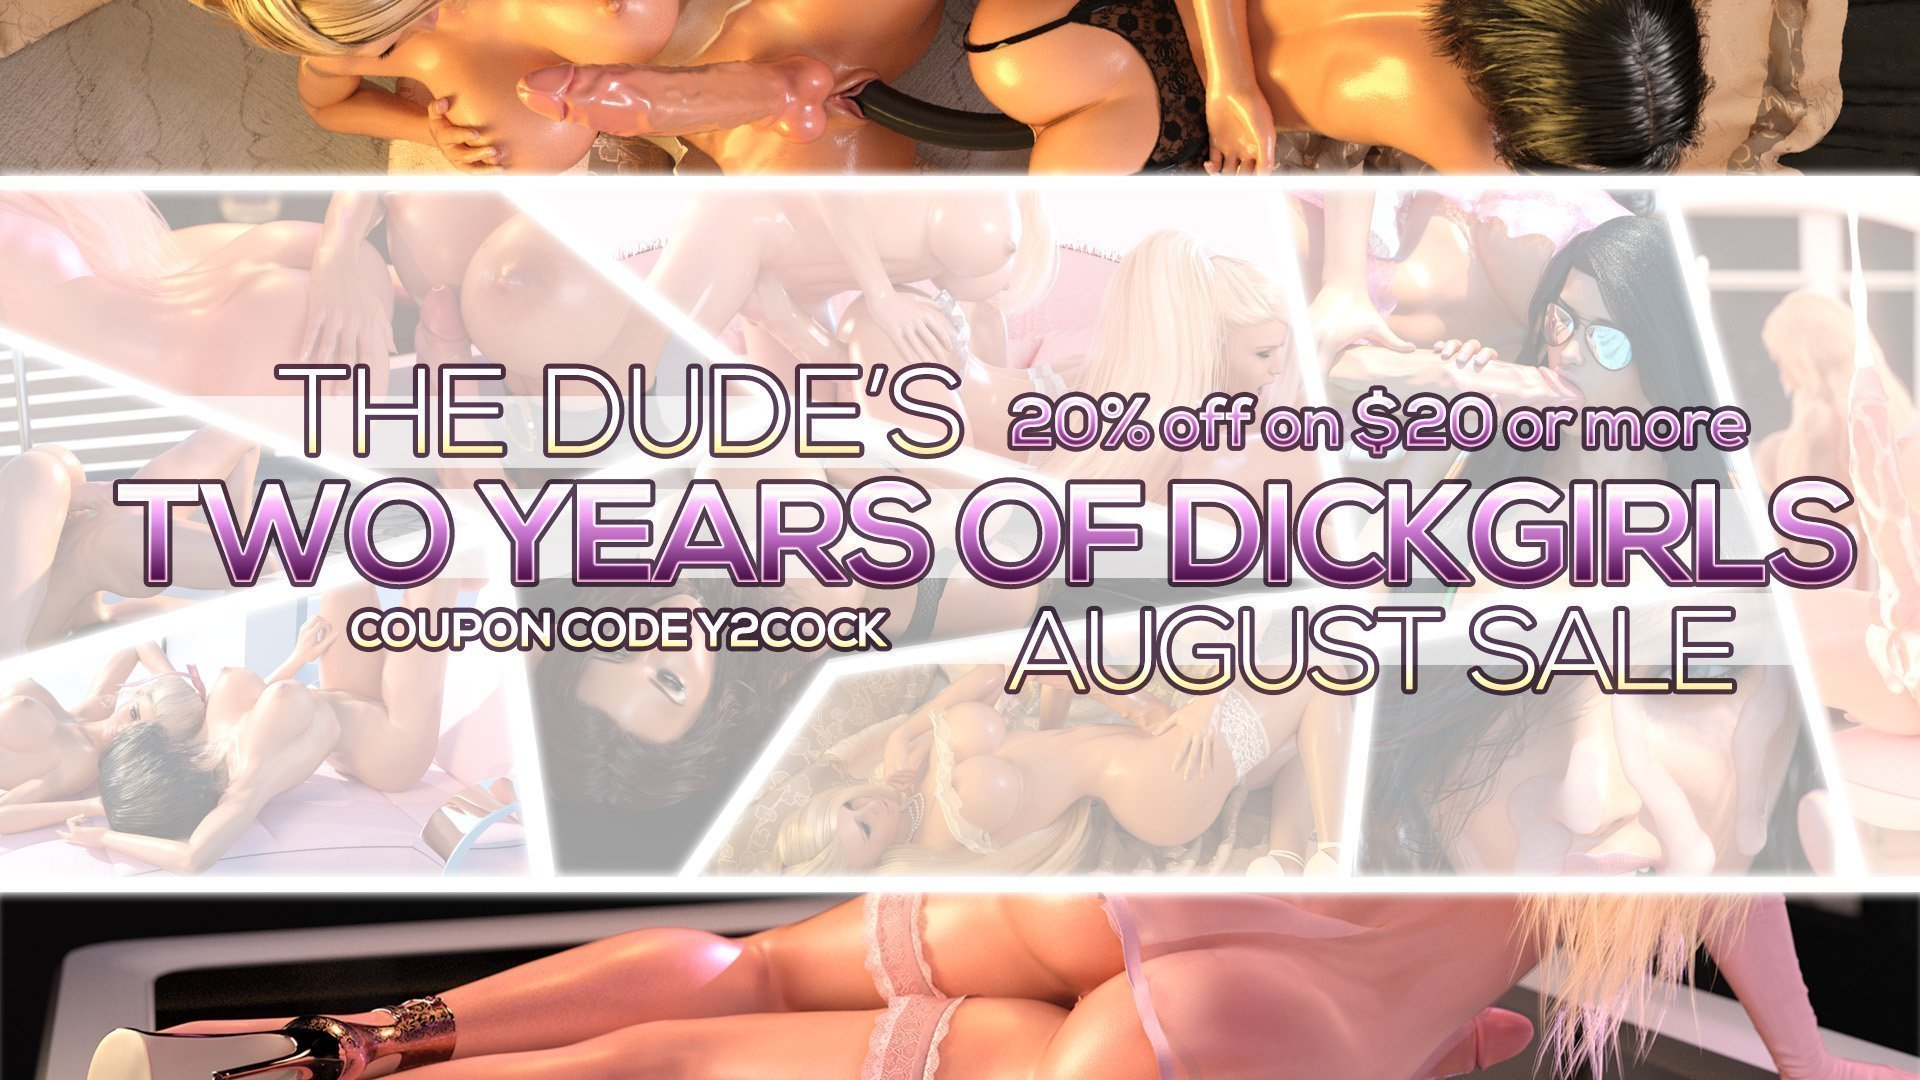 TheDude3DX's Two Years of Dickgirls Sale